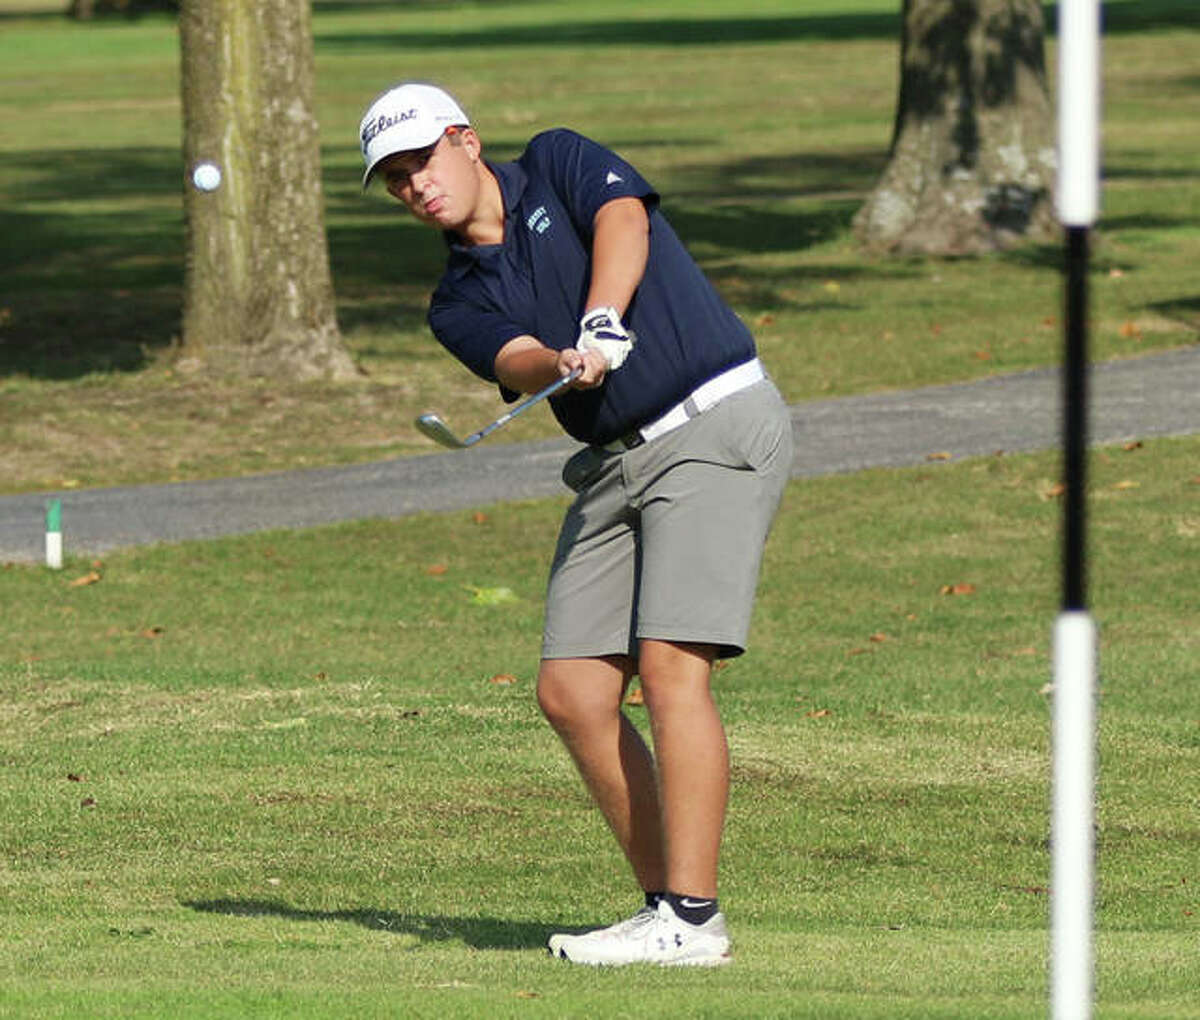 Jersey's Clark Norris chips onto the green on hole No. 1 at Belk Park golf course on Tuesday in the Roxana Class 2A Regional in Wood River. Norris tied for fifth with an 83 and advanced to the sectional.